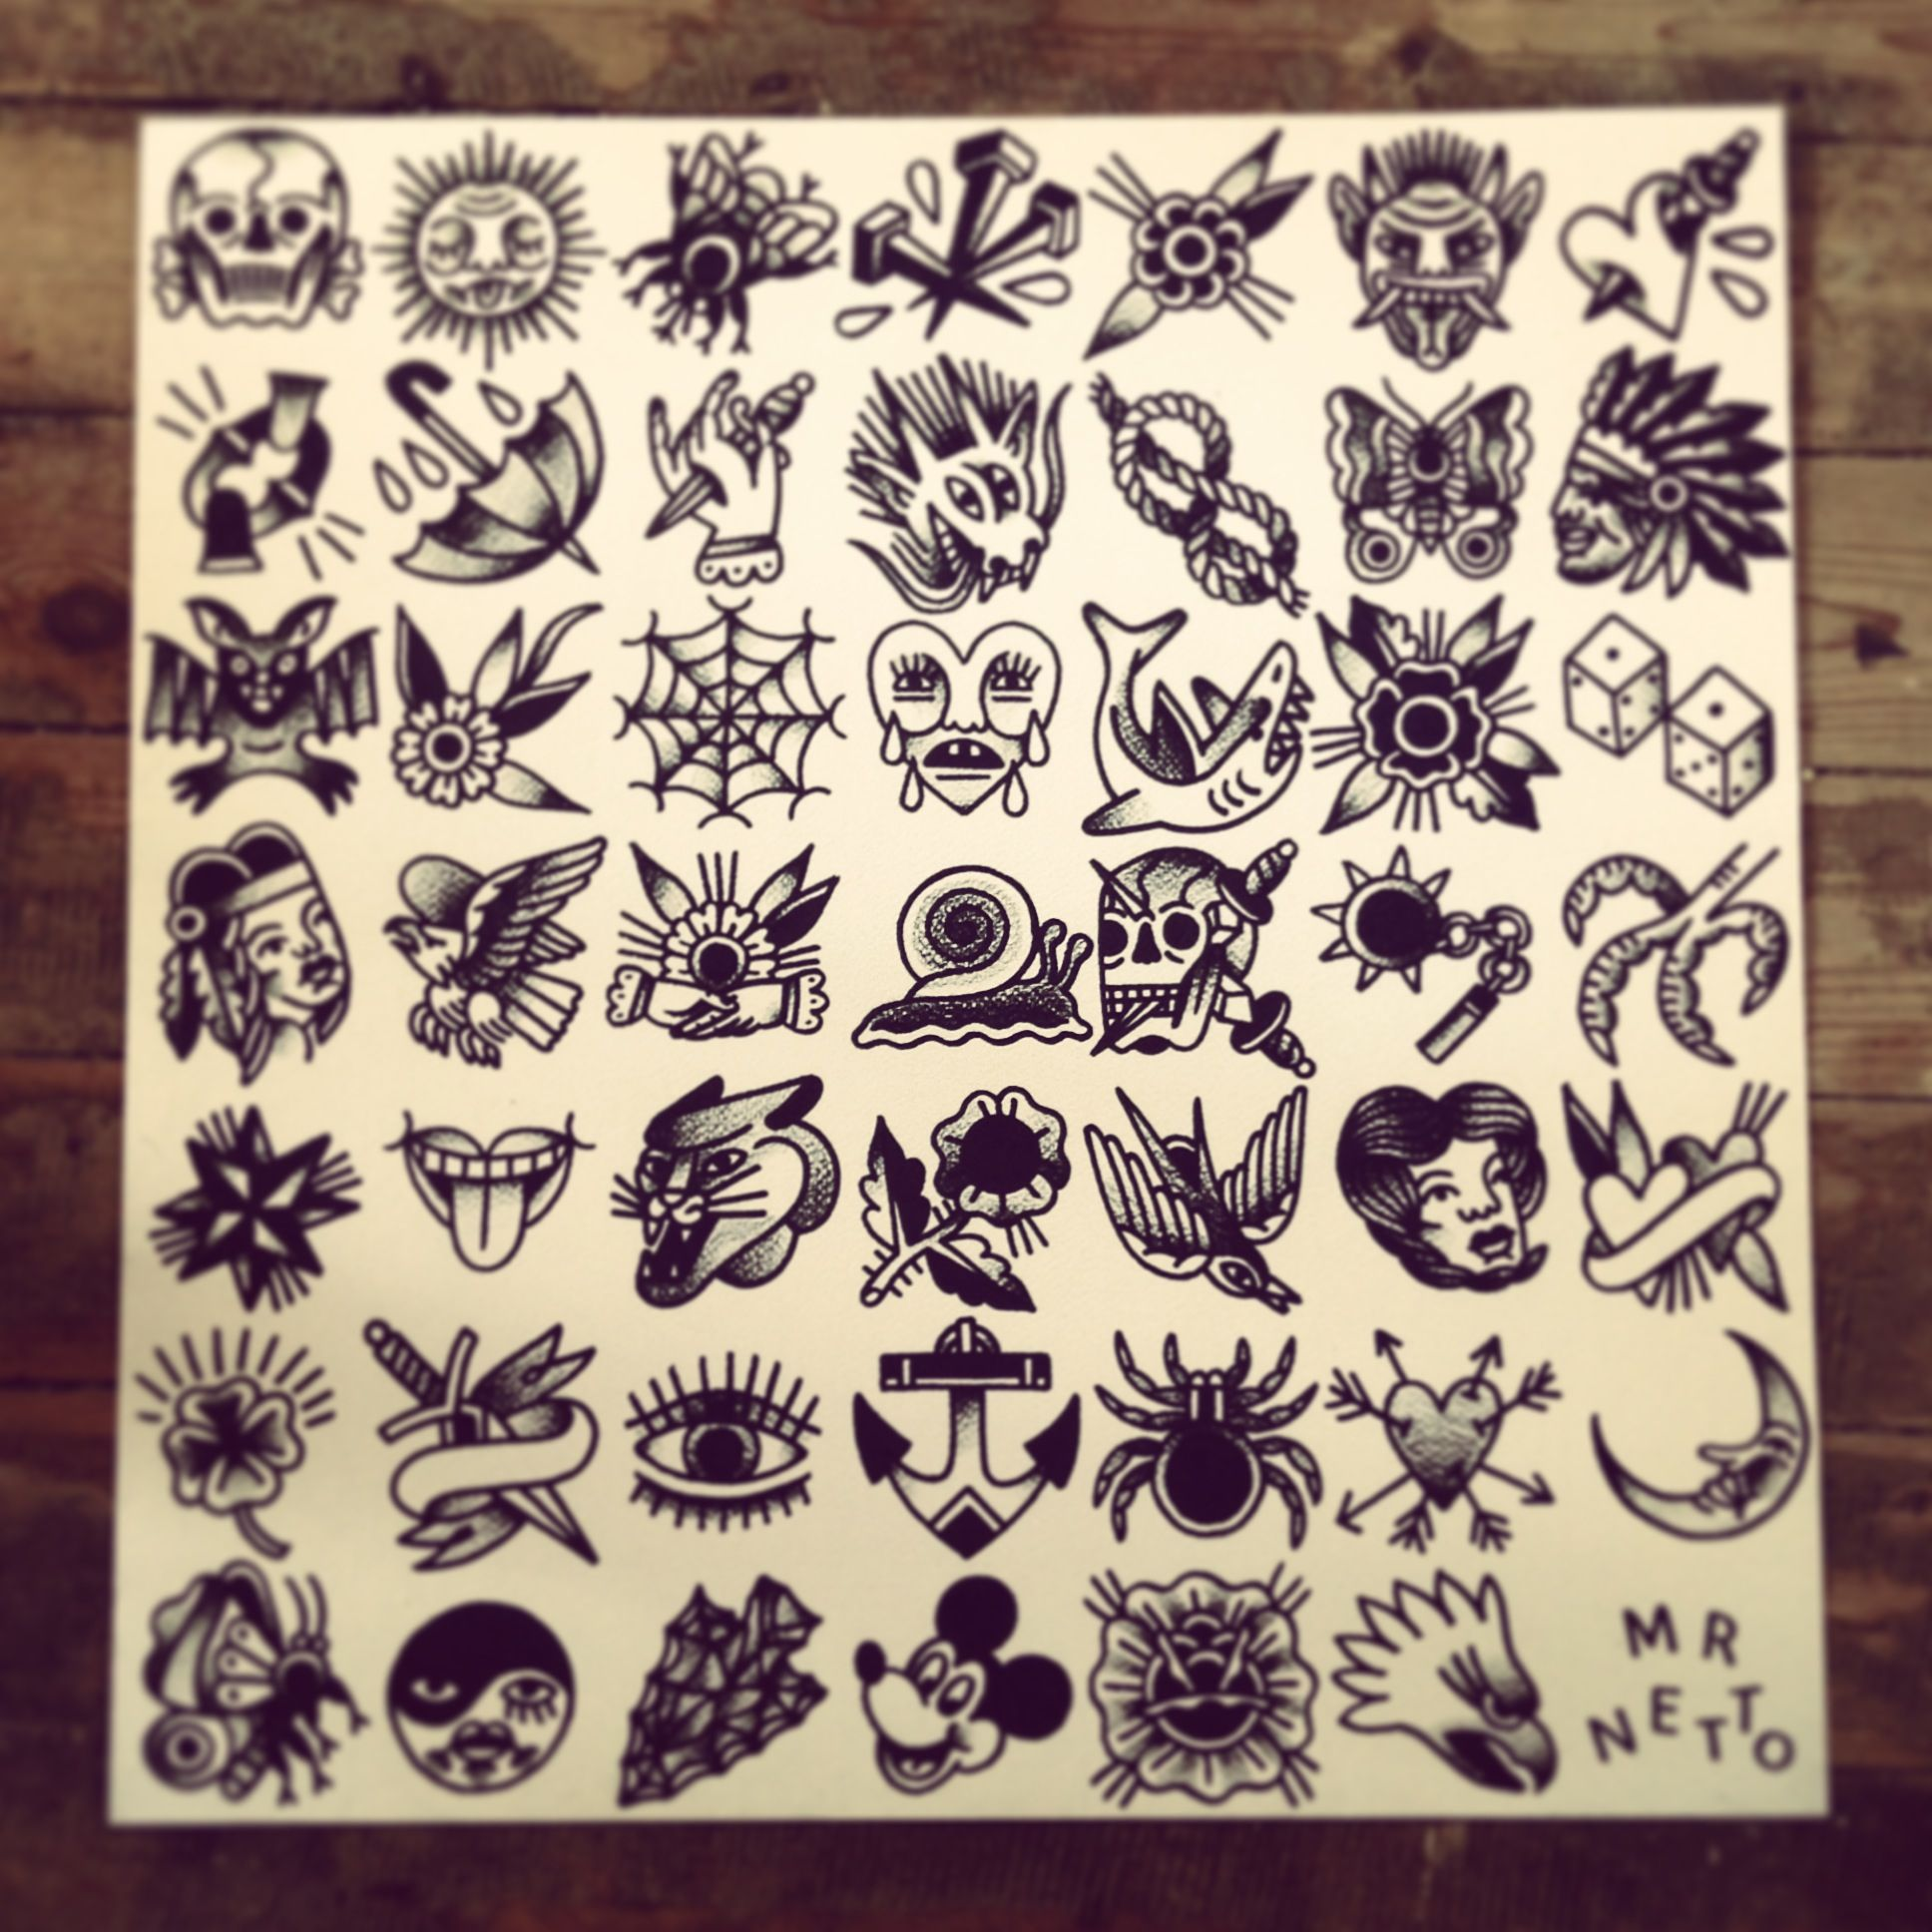 Face tattoos designs and ideas page 7 - 70 X 70 Cm Tattoo Flash By Mr Levi Netto All Designs Are 7